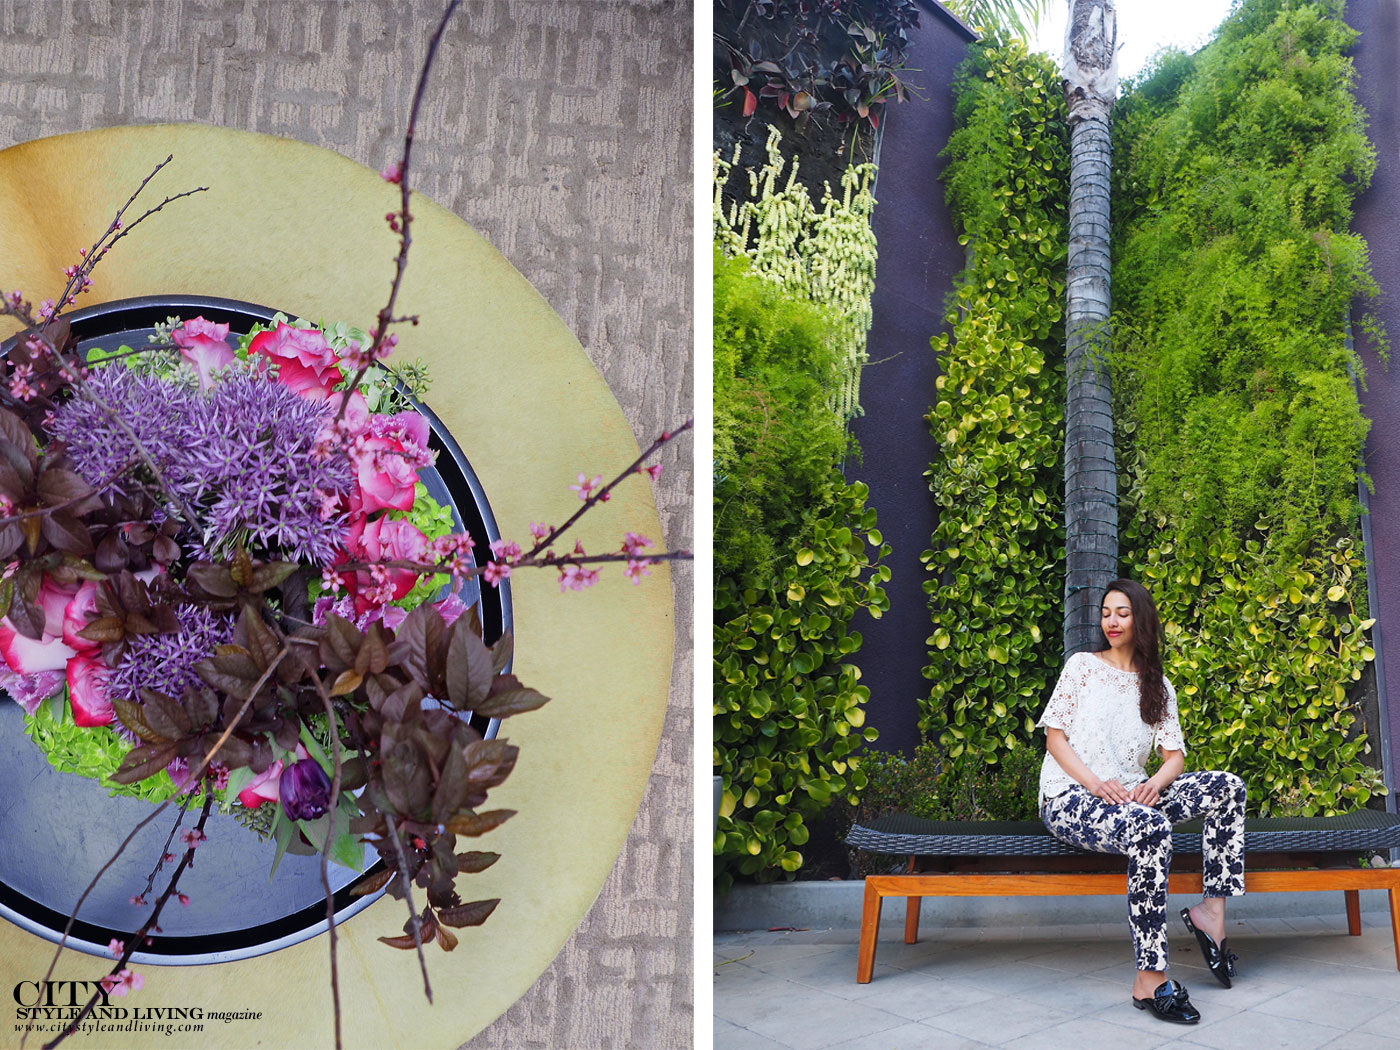 City Style and Living Magazine Summer 2019 Hotels Avenue of the Arts Costa Mesa flowers and living wall